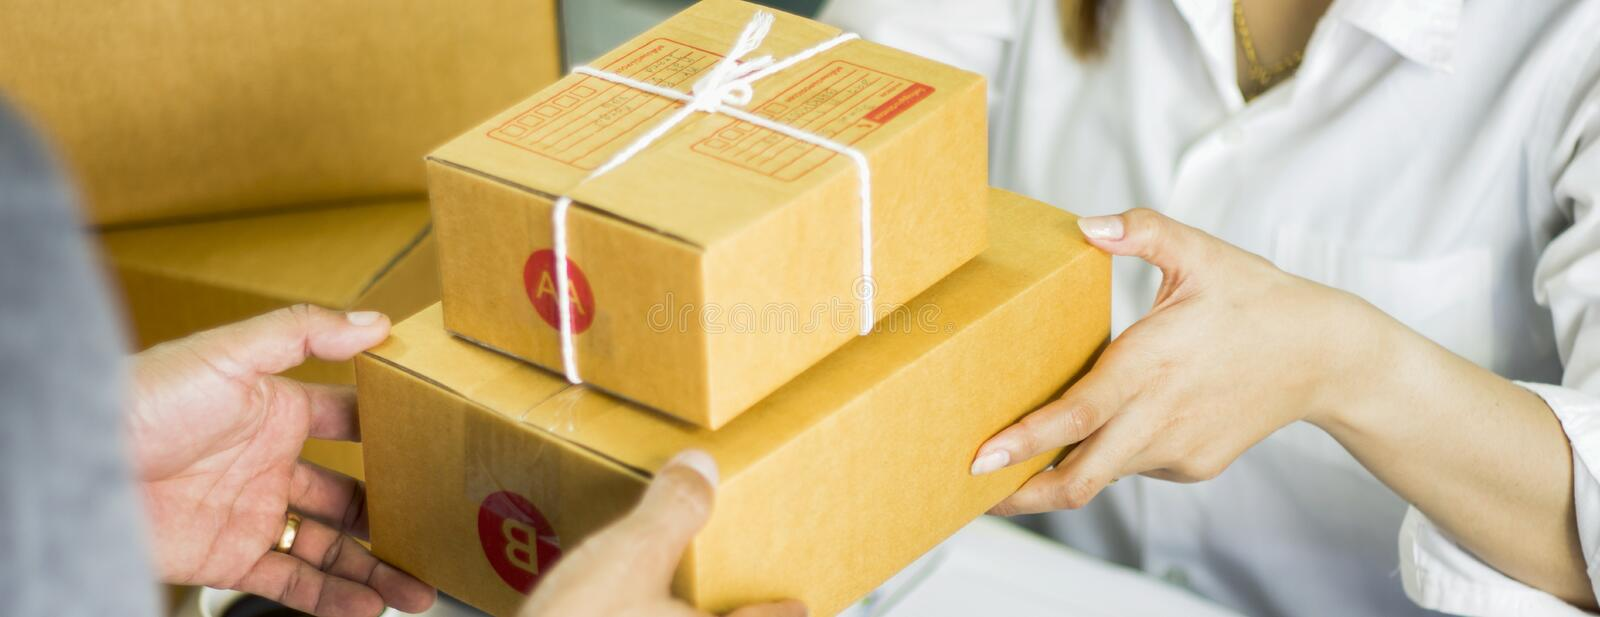 Startup working workplace business owner prepare to deliver goods in cardboard box to delivery man who has handed over,Concept stock image